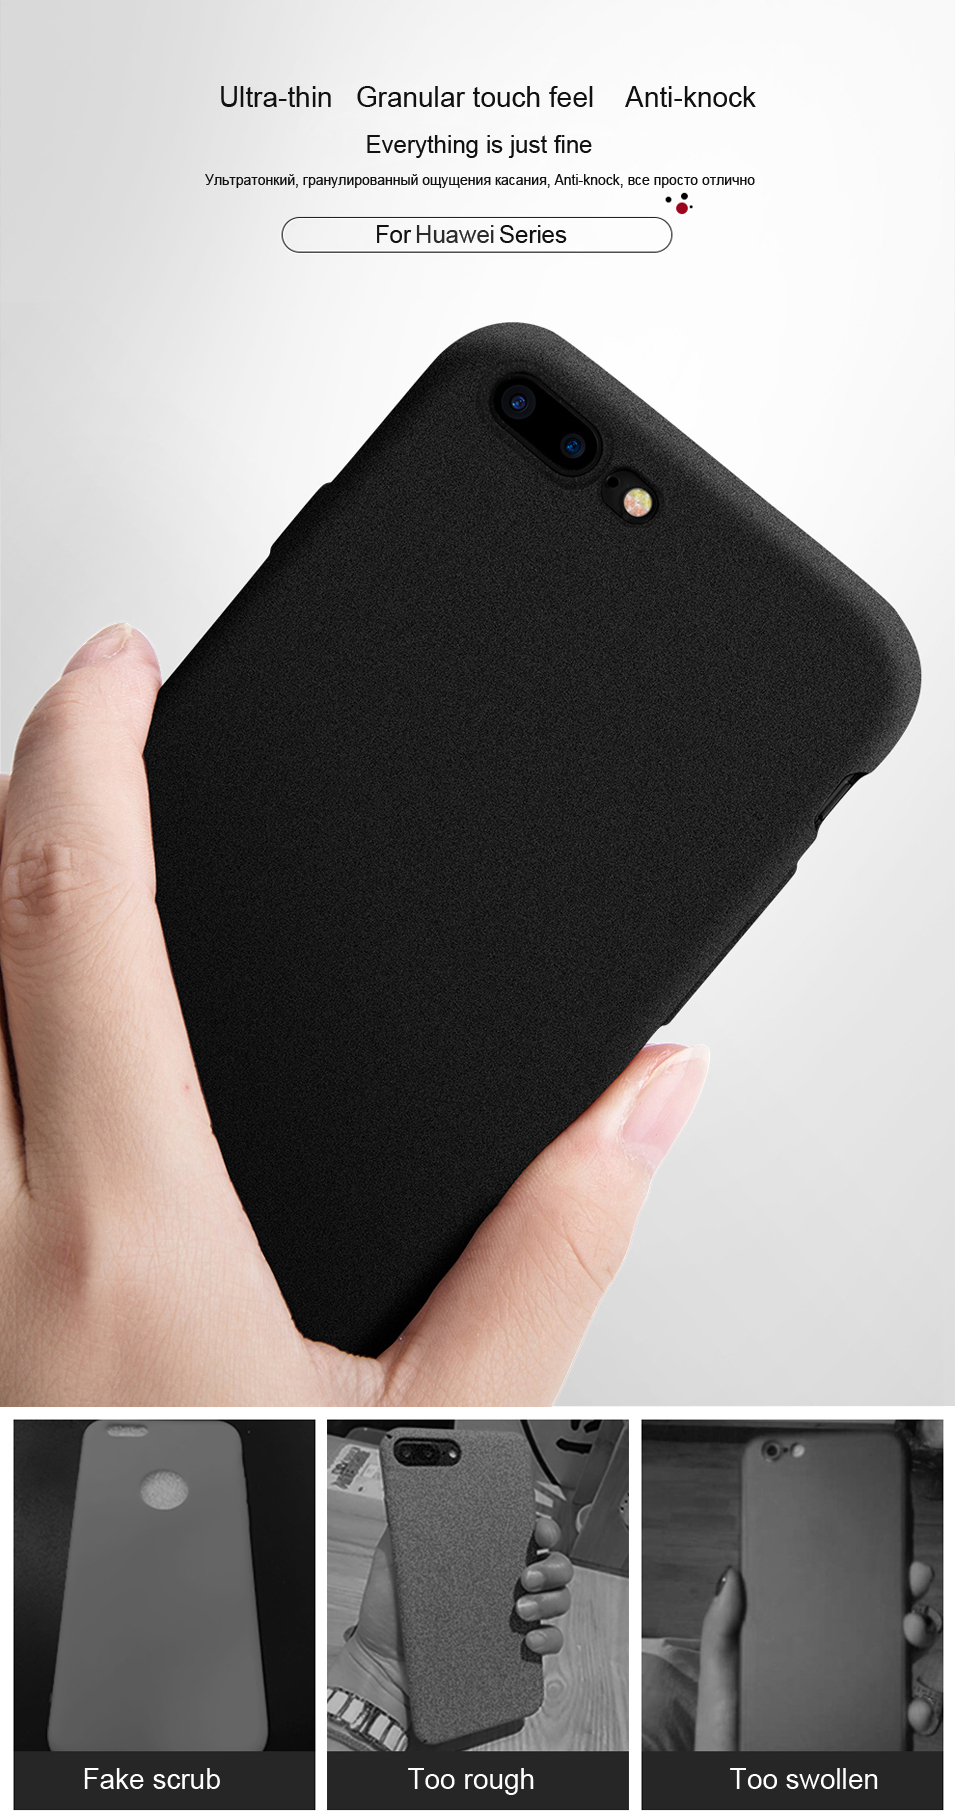 Soft Silicone Phone Case for Xiaomi Note 2 A1 Mix 2s 5X Max 2 Case Cover for Redmi Note 5A Prime 2S 5 Plus Case Matte Back Cover (9)